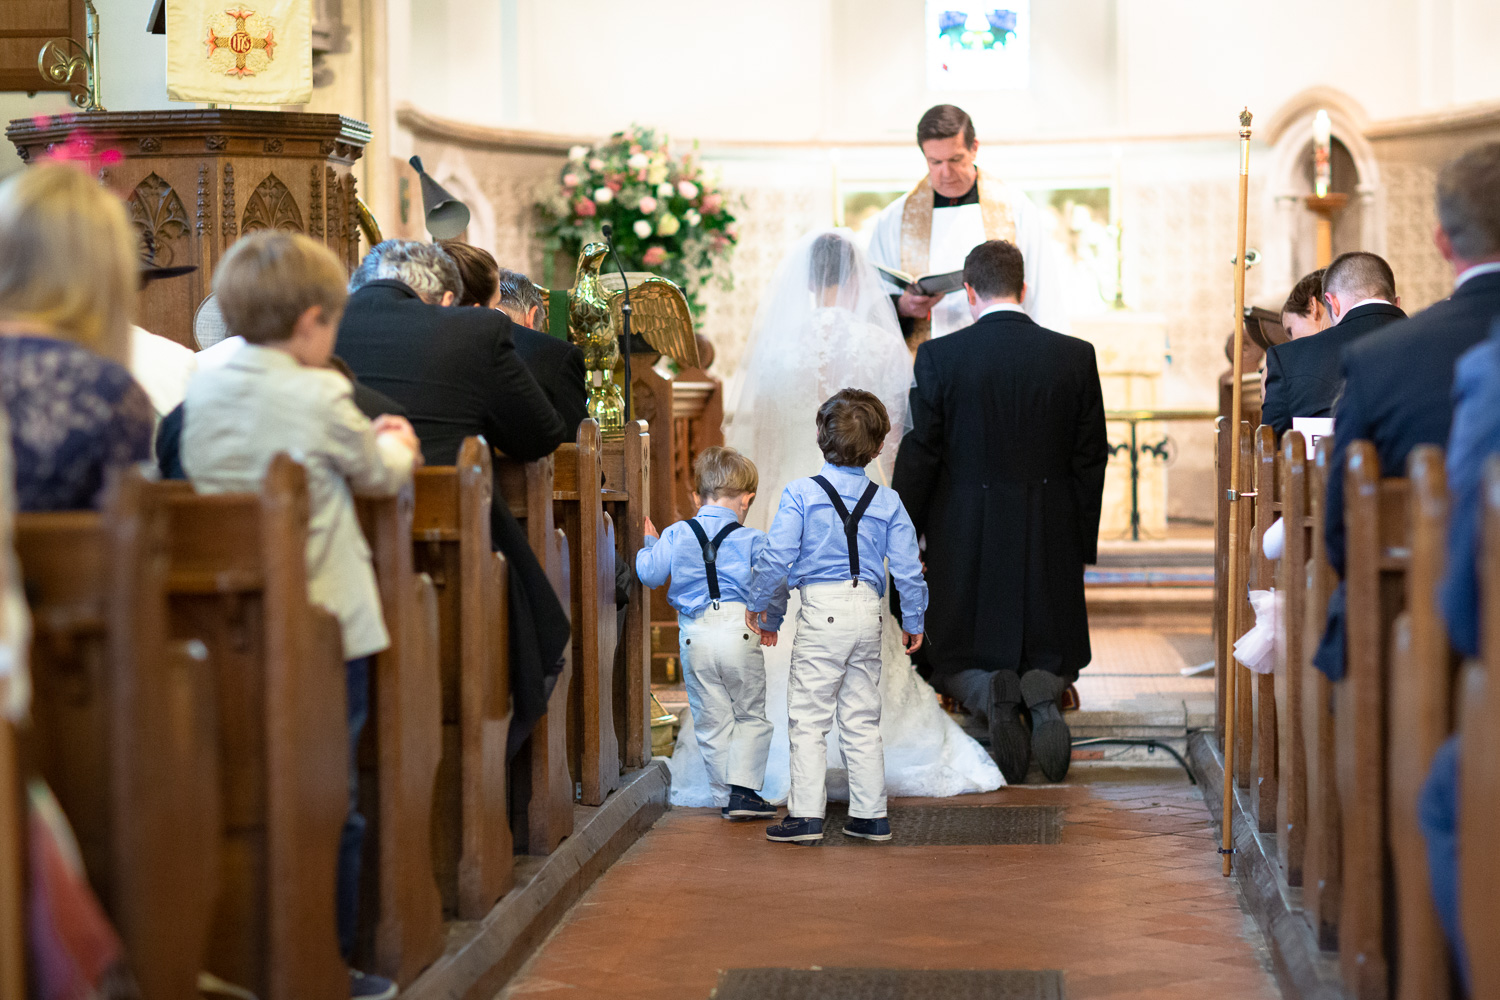 Wedding photography portfolio page boys in aisle during marriage vows